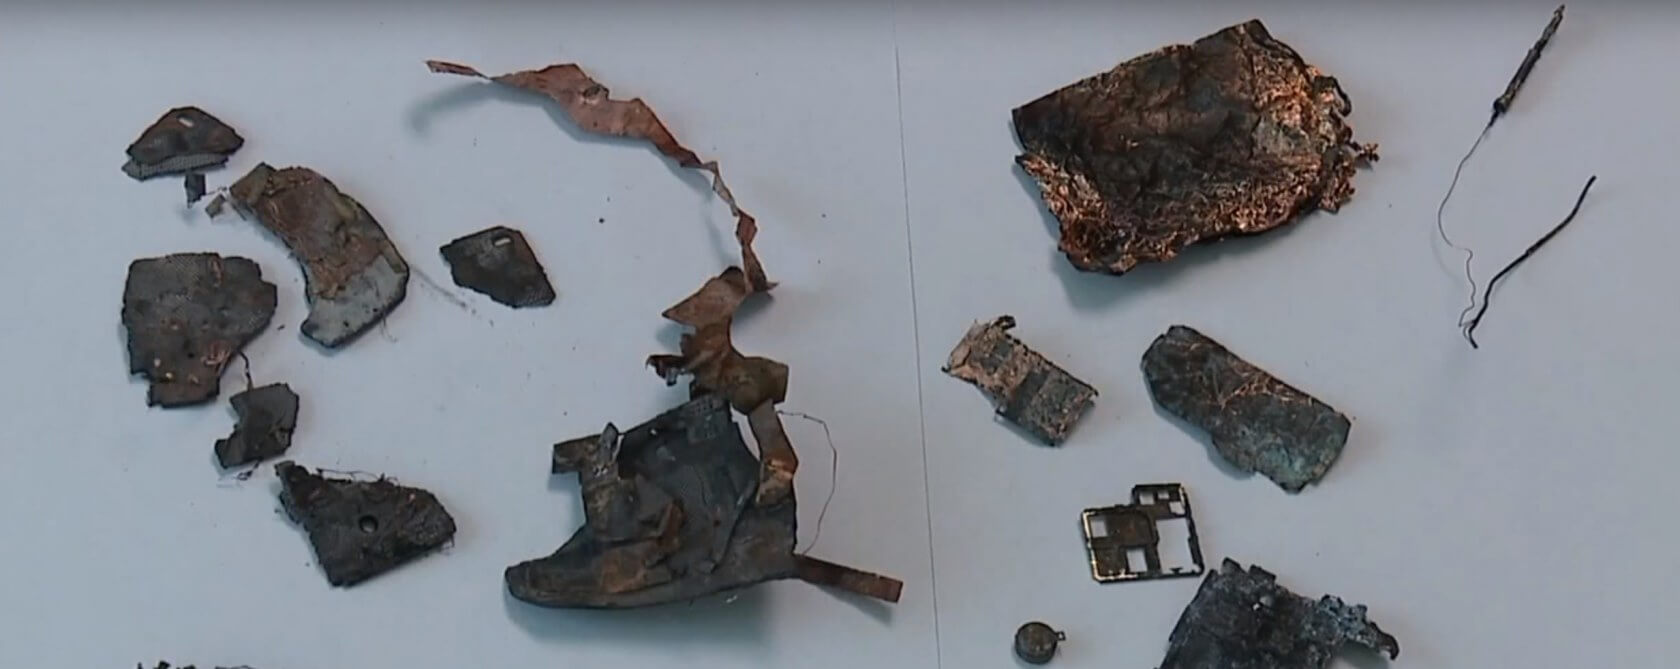 Woman says her Samsung phone exploded, started fire that destroyed car